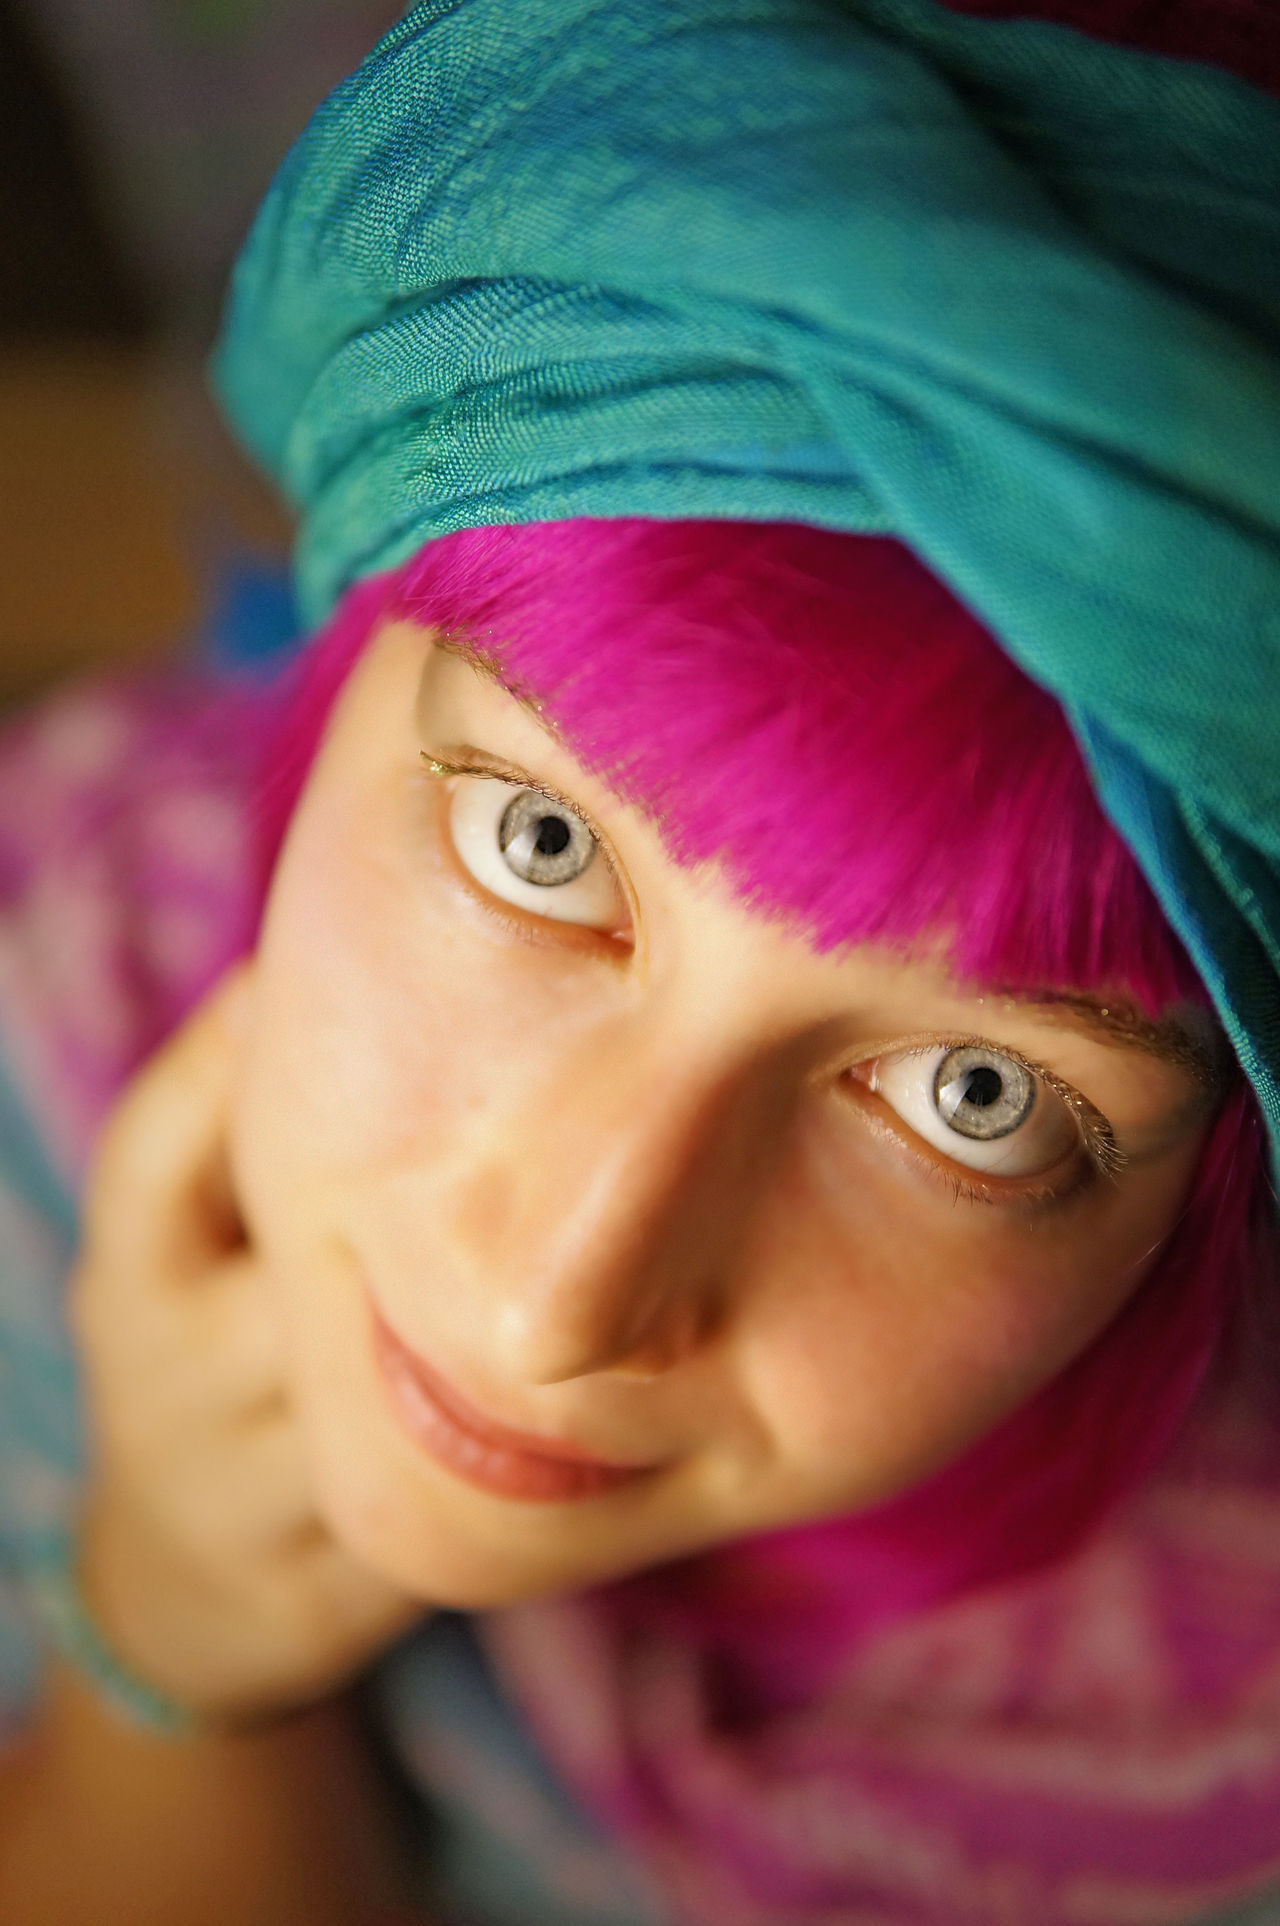 Jewish/Russian heritage eyes Big Eyes Big Eyes♡ Blue Blue Eyes Close Up Close-up Dyed Hair Eye EyeEm Best Shots Eyes Headshot Innocence Jewish Looking At Camera One Person People Pink Pink Hair Pink Wig Portrait Portrait Of A Friend Russian Girl Teenager Water Young Adult